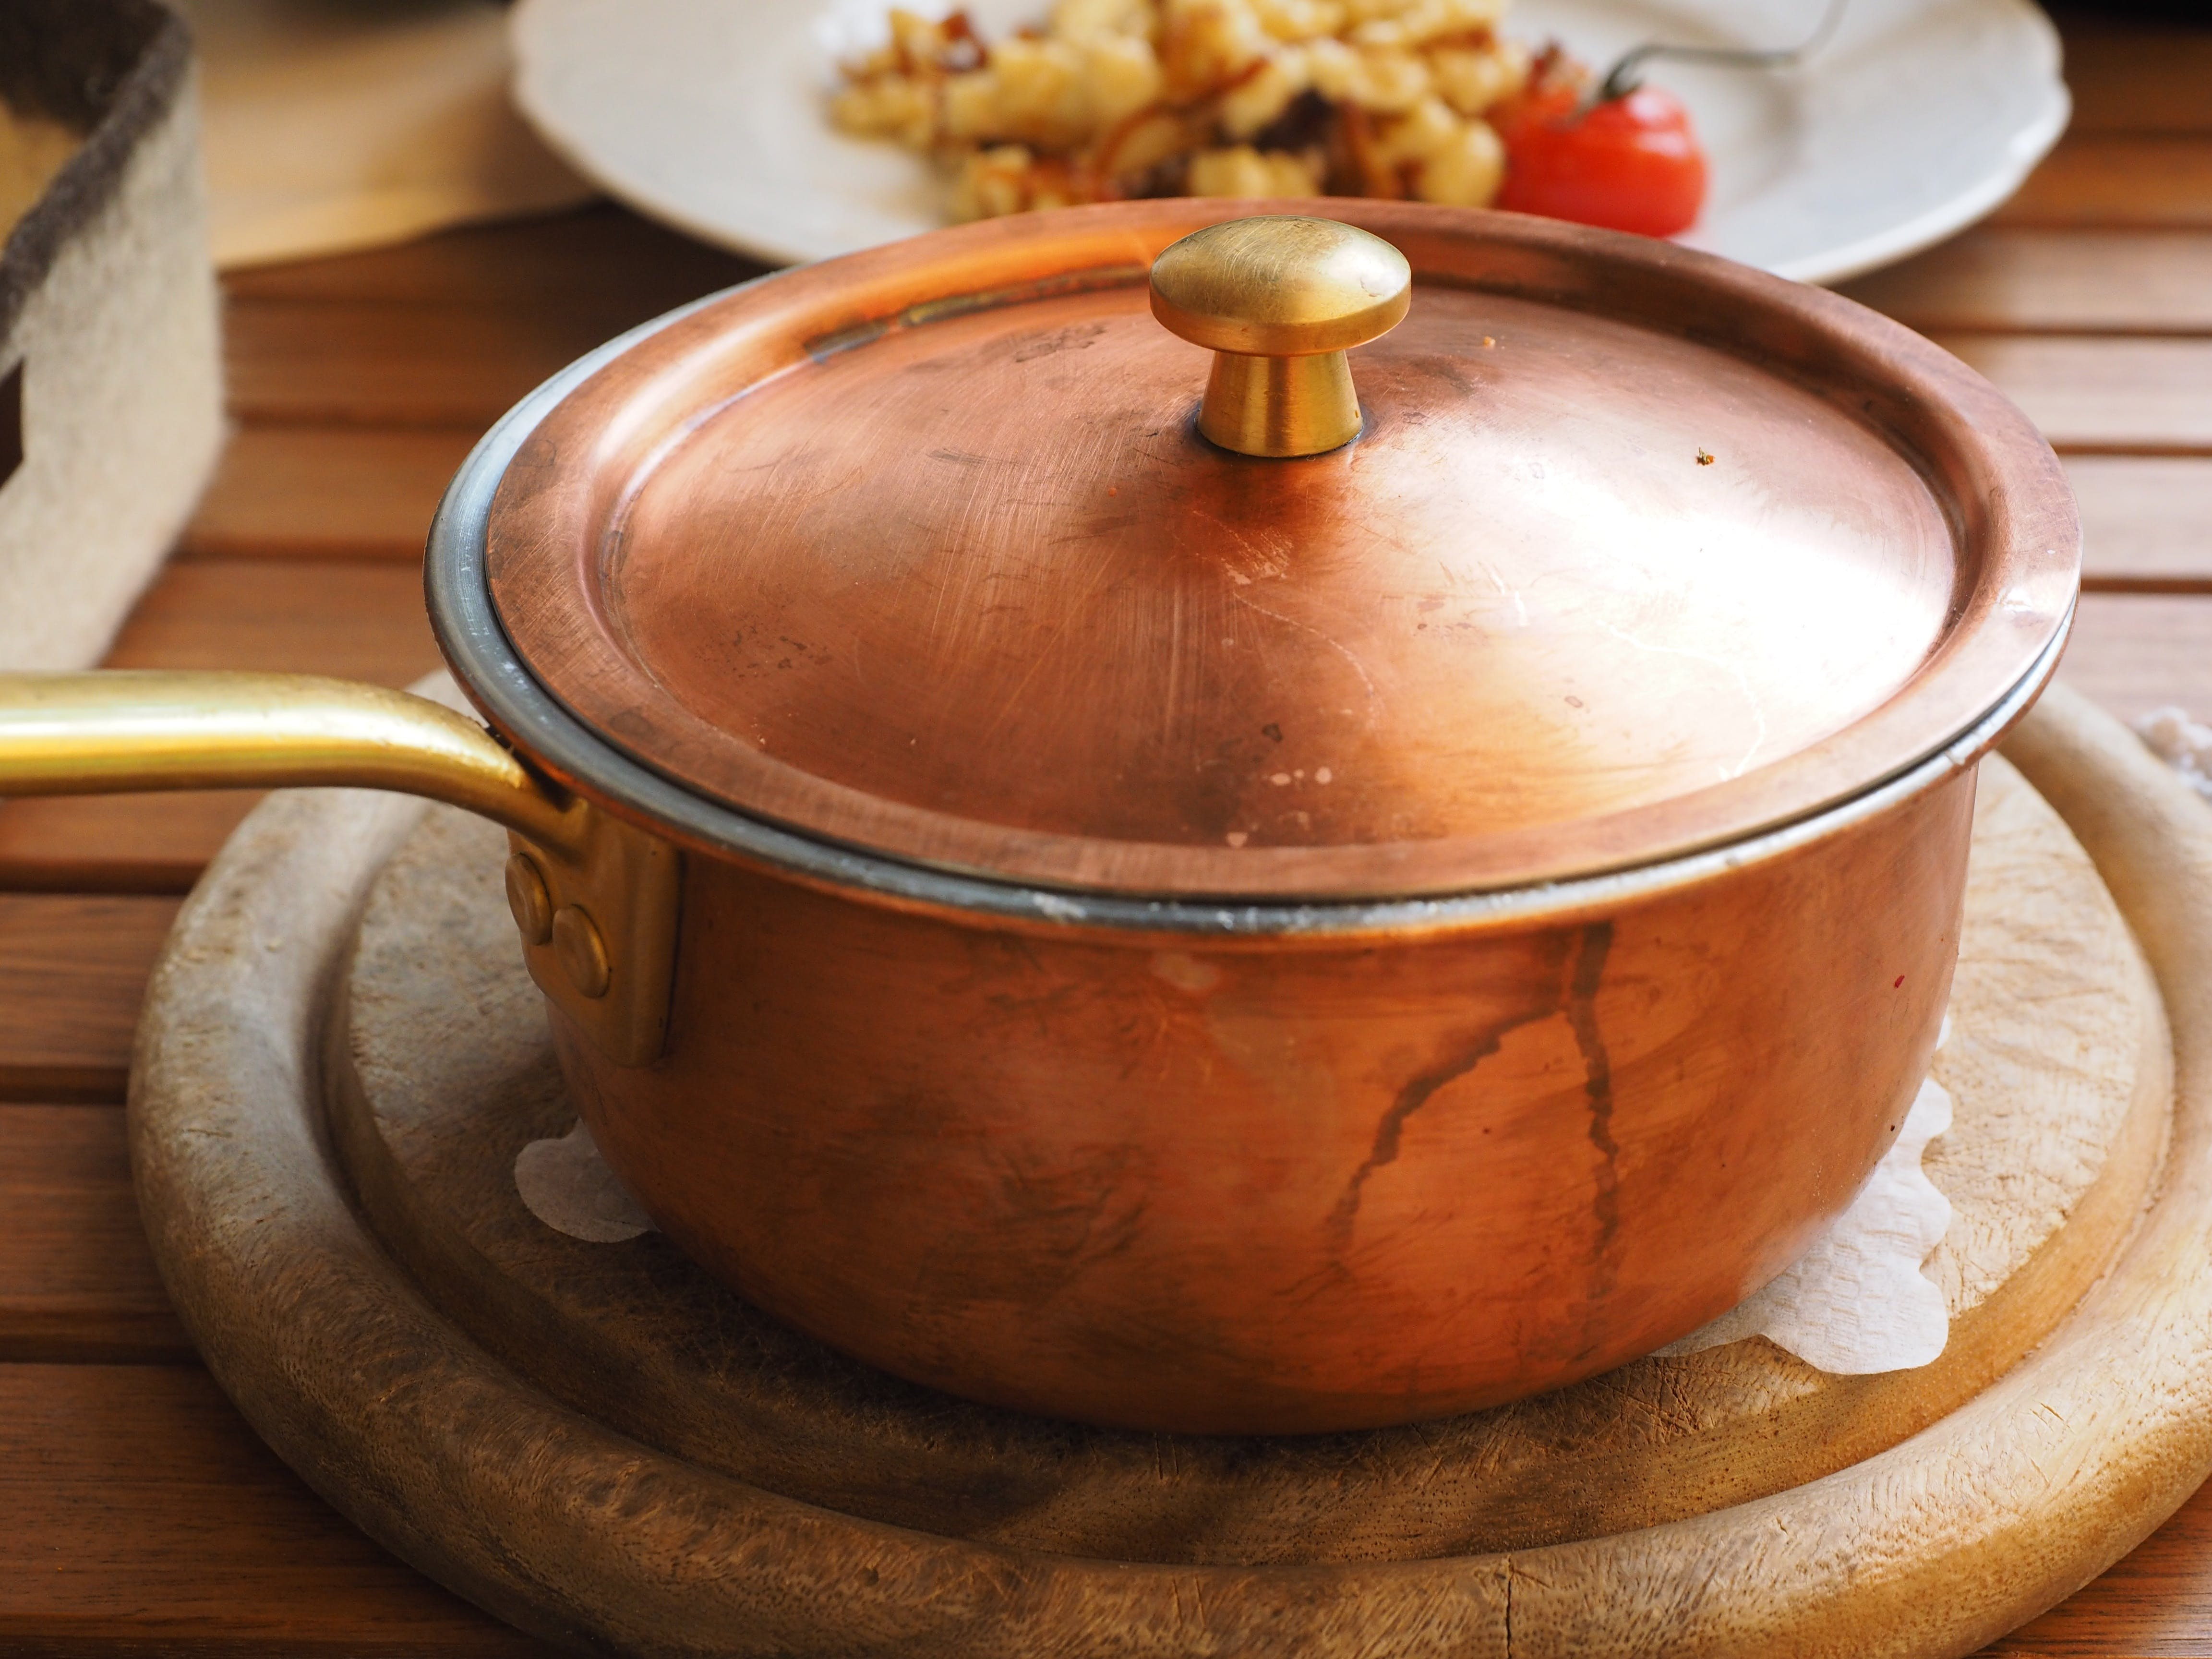 Brown Lidded Cooking Pot on Gray Round Wooden Coaster